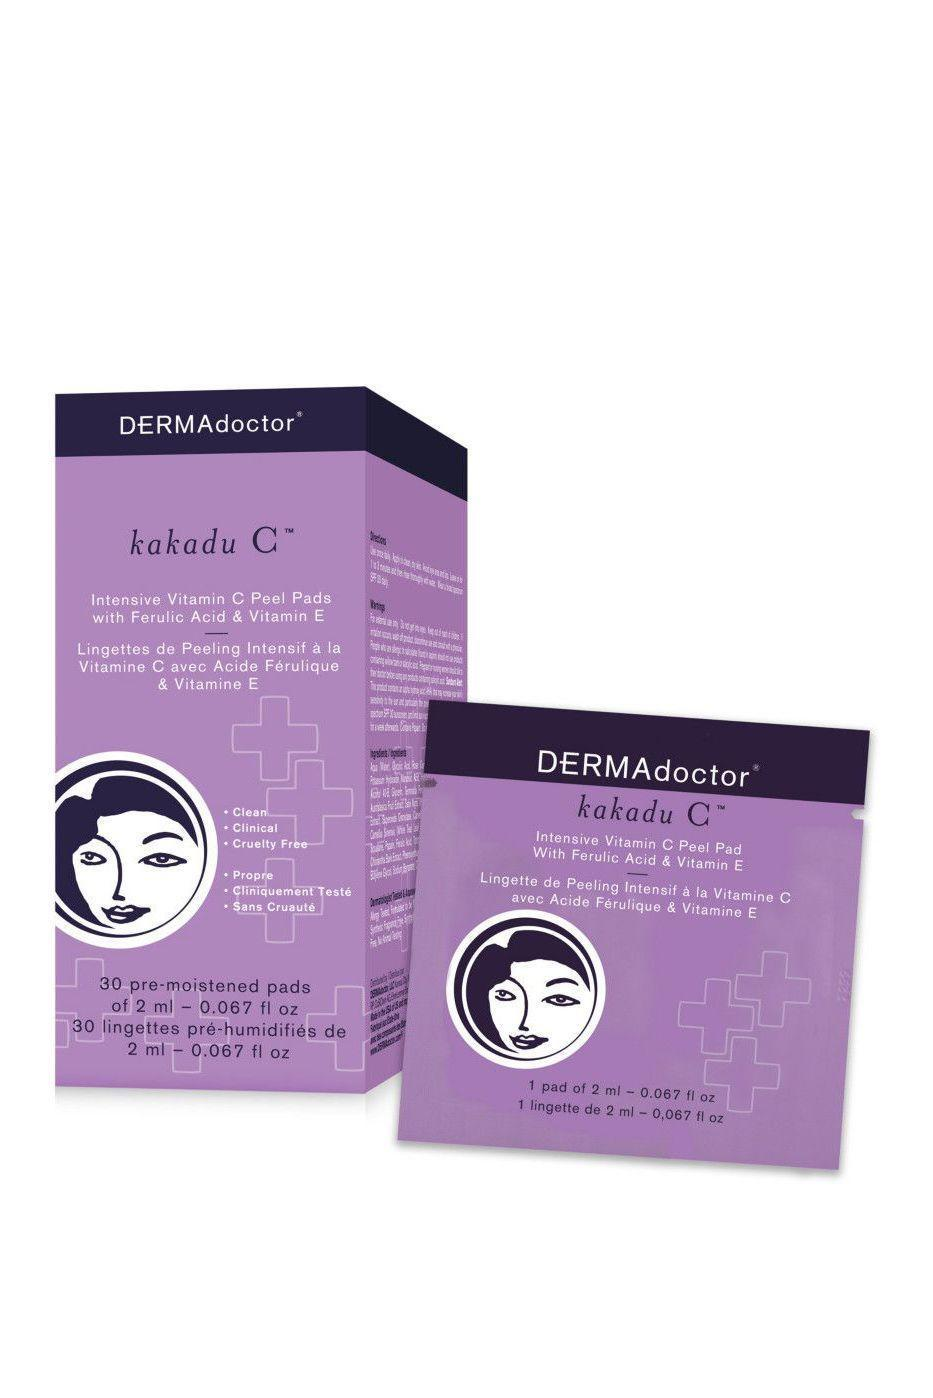 """<p><strong>Dermadoctor</strong></p><p>ulta.com</p><p><strong>$39.00</strong></p><p><a href=""""https://go.redirectingat.com?id=74968X1596630&url=https%3A%2F%2Fwww.ulta.com%2Fkakadu-c-intensive-vitamin-c-peel-pad-with-ferulic-acid-vitamin-e%3FproductId%3DxlsImpprod14181007&sref=https%3A%2F%2Fwww.marieclaire.com%2Fbeauty%2Fg35067108%2Fferulic-adic-guide%2F"""" rel=""""nofollow noopener"""" target=""""_blank"""" data-ylk=""""slk:SHOP IT"""" class=""""link rapid-noclick-resp"""">SHOP IT </a></p><p>The key to a clear complexion is exfoliation. Turn to Kakadu C for a gentle daily peel that promotes rapid cell turnover to reveal a radiant glow. </p>"""